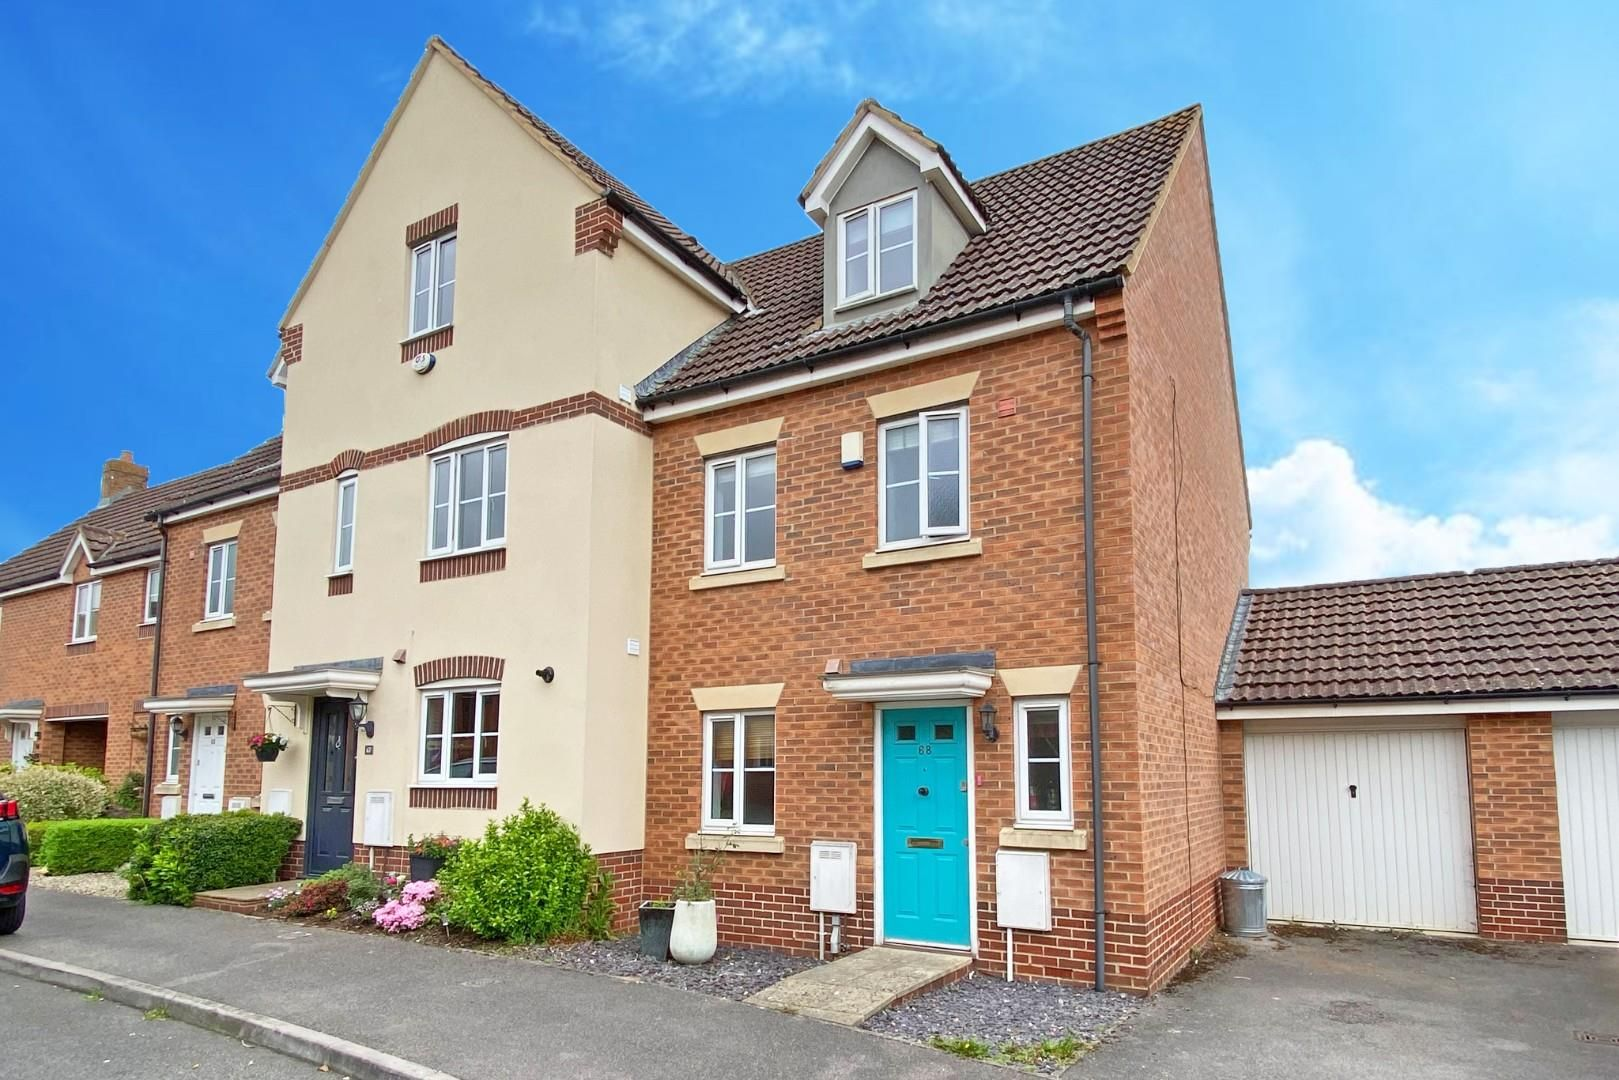 3 bed end of terrace to rent in Shinfield 1